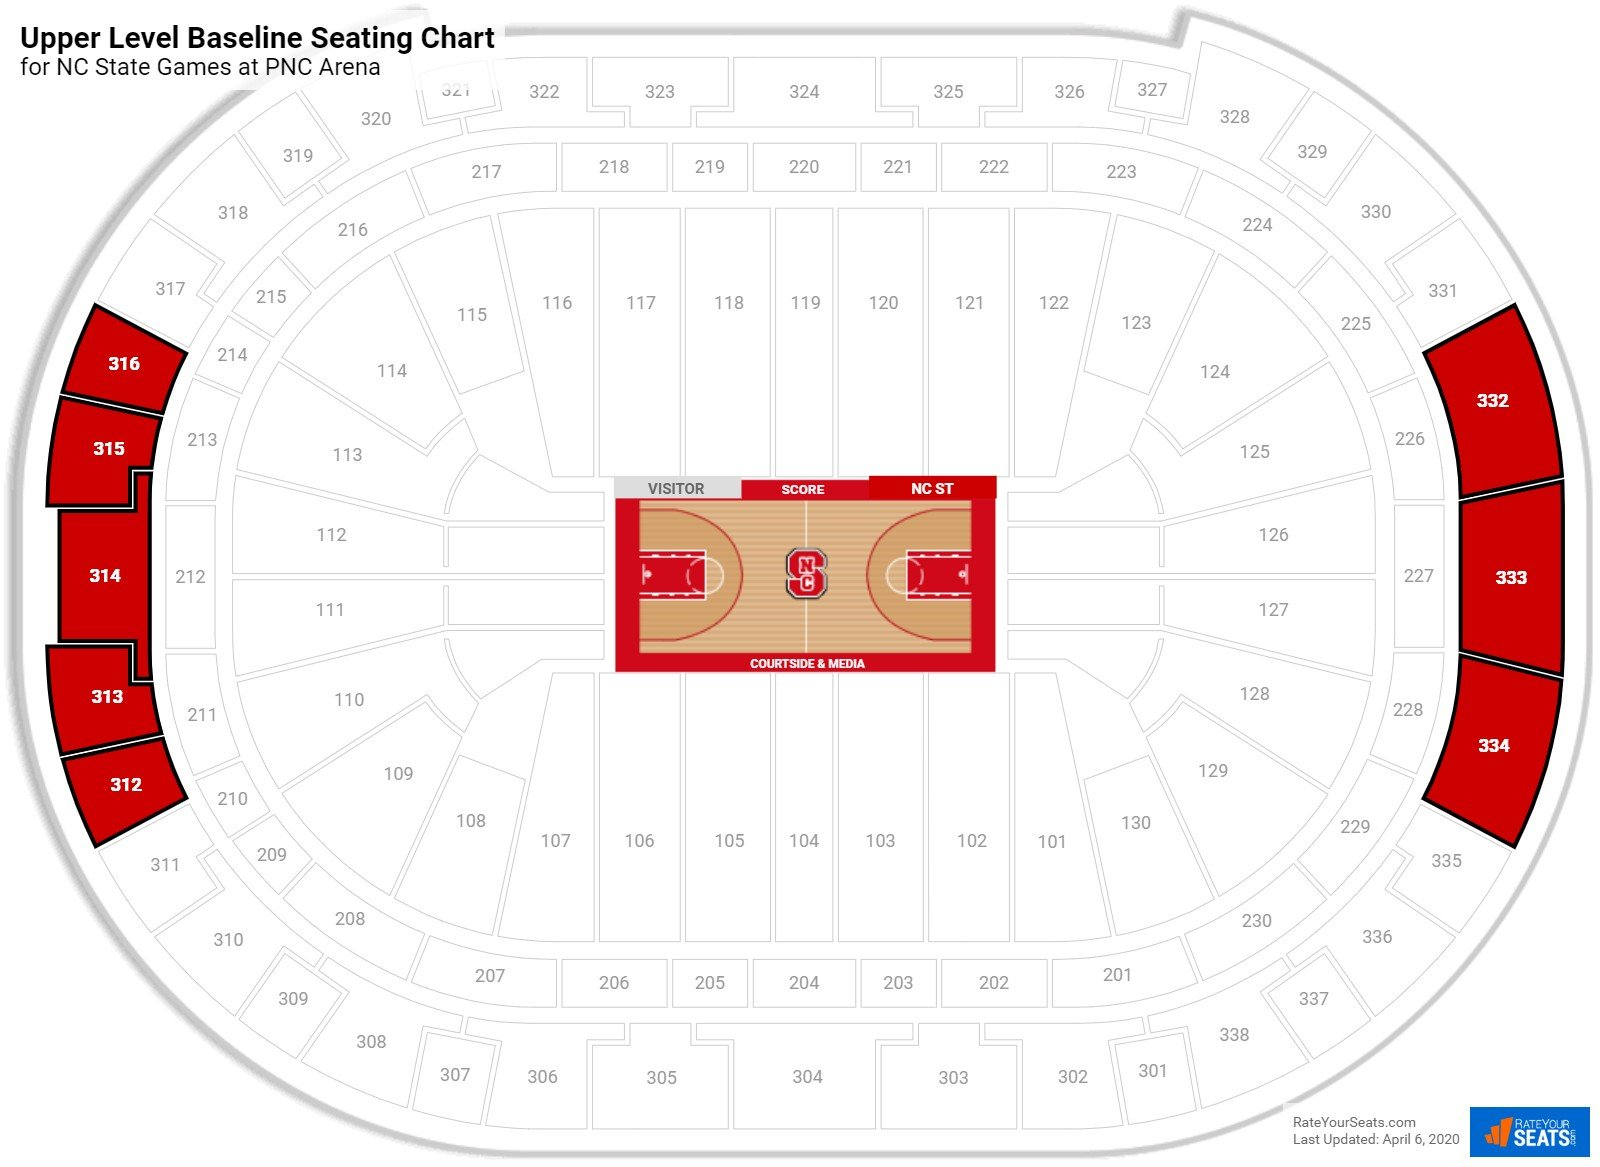 PNC Arena Upper Level Baseline seating chart